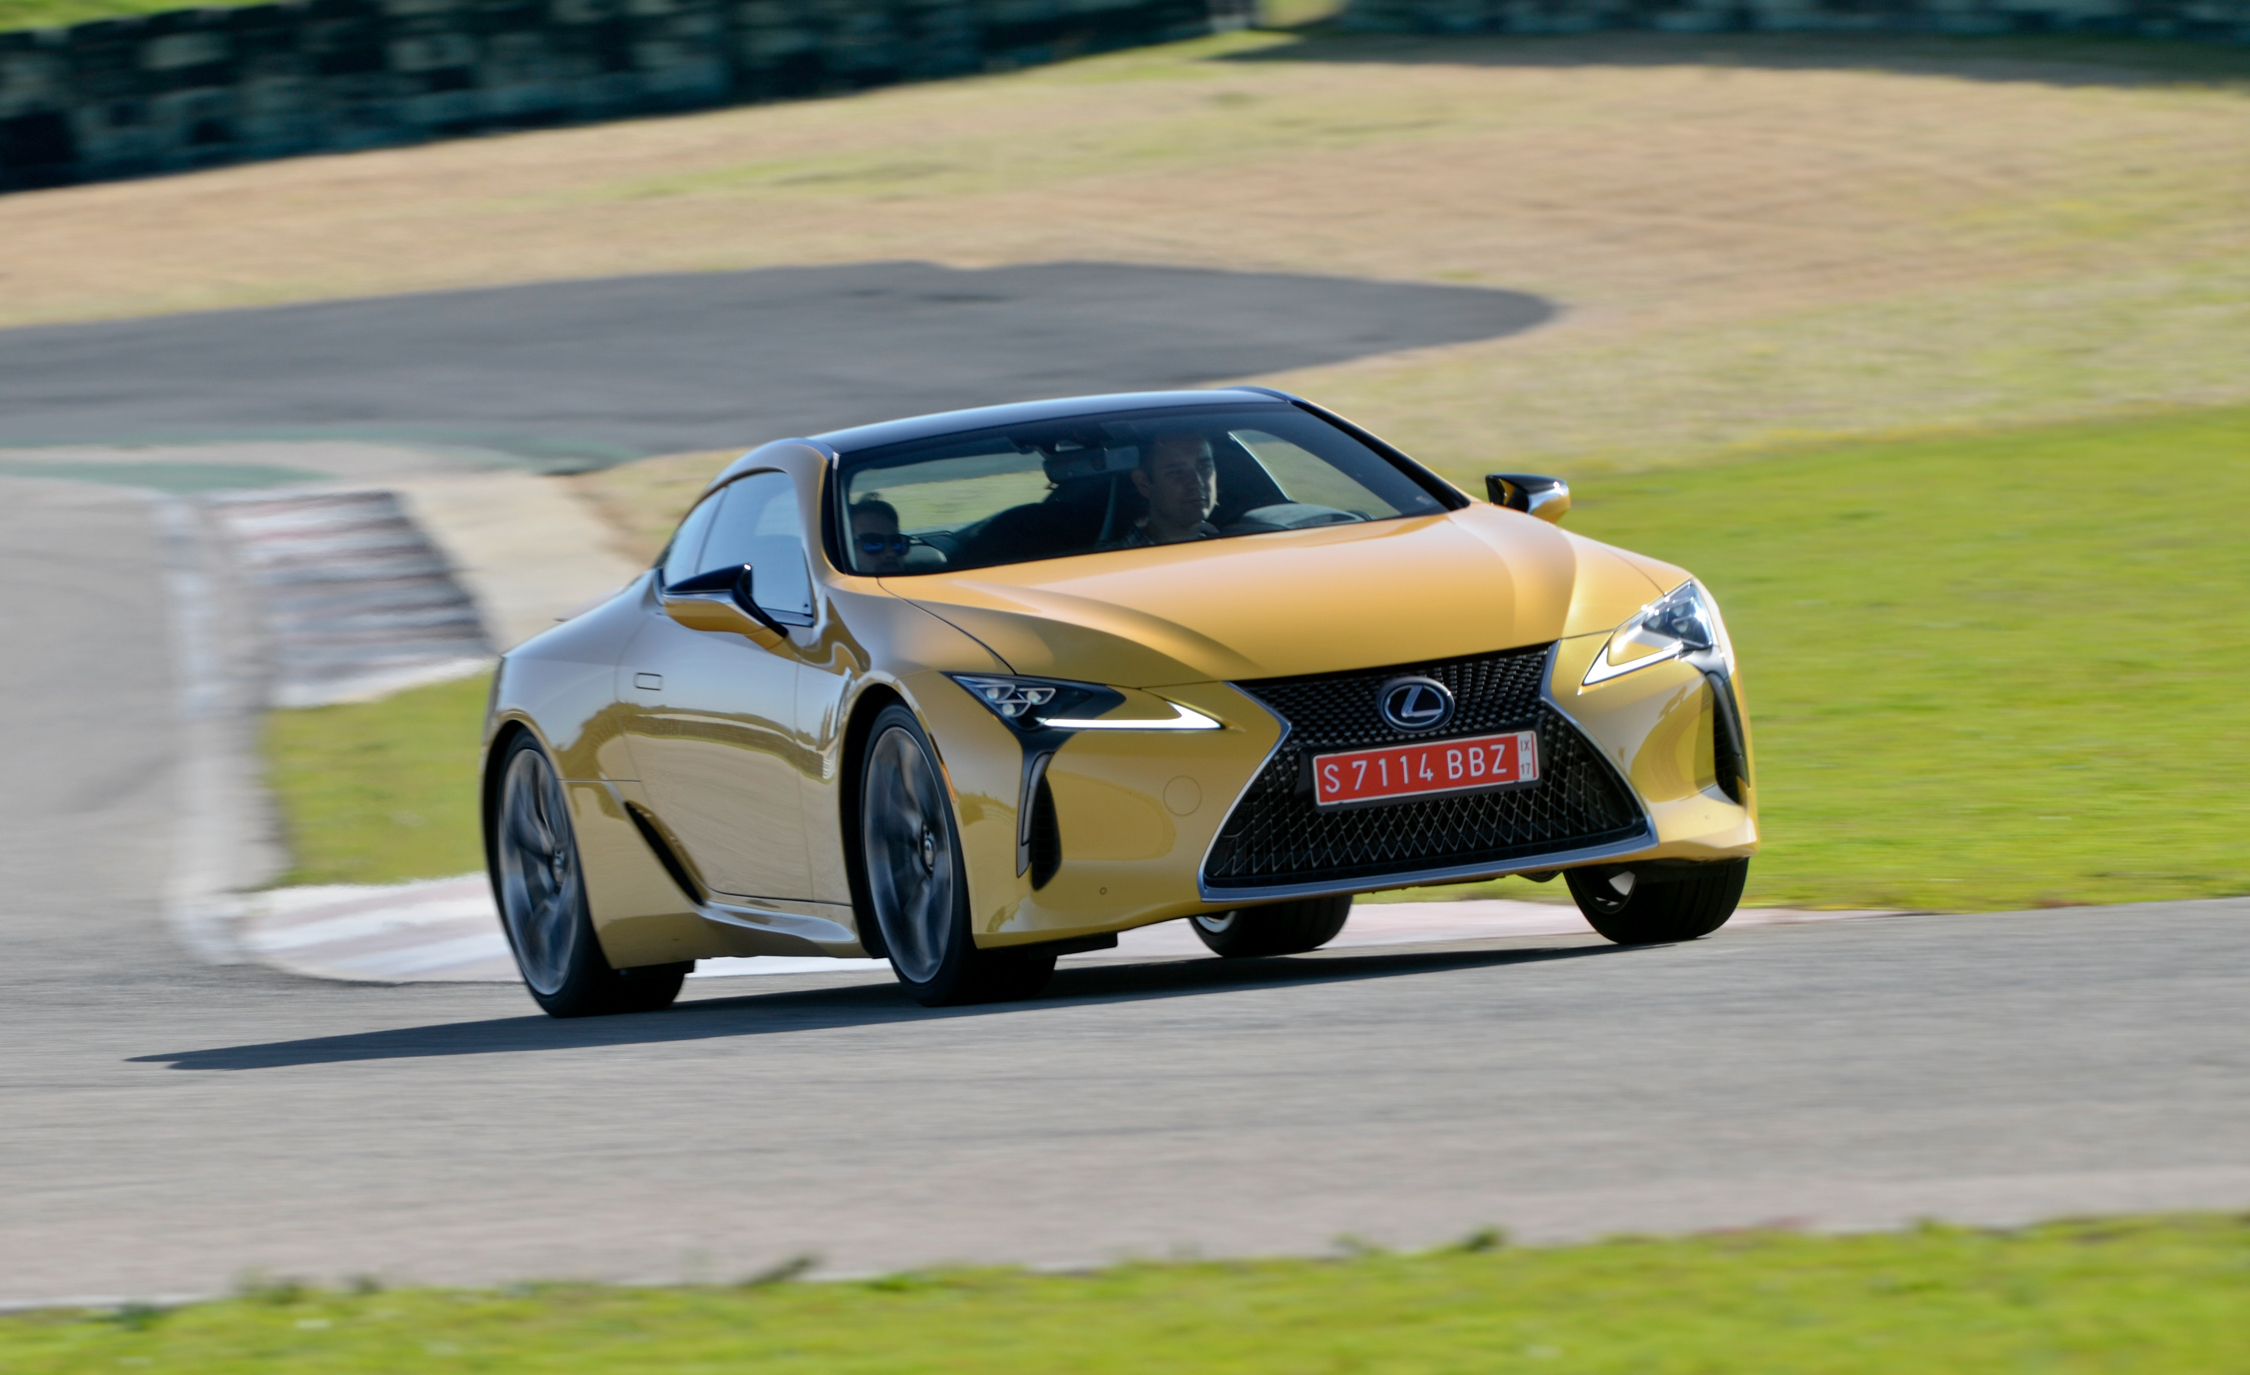 2018 Lexus Lc 500 Yellow Test Drive Front View (Photo 18 of 84)